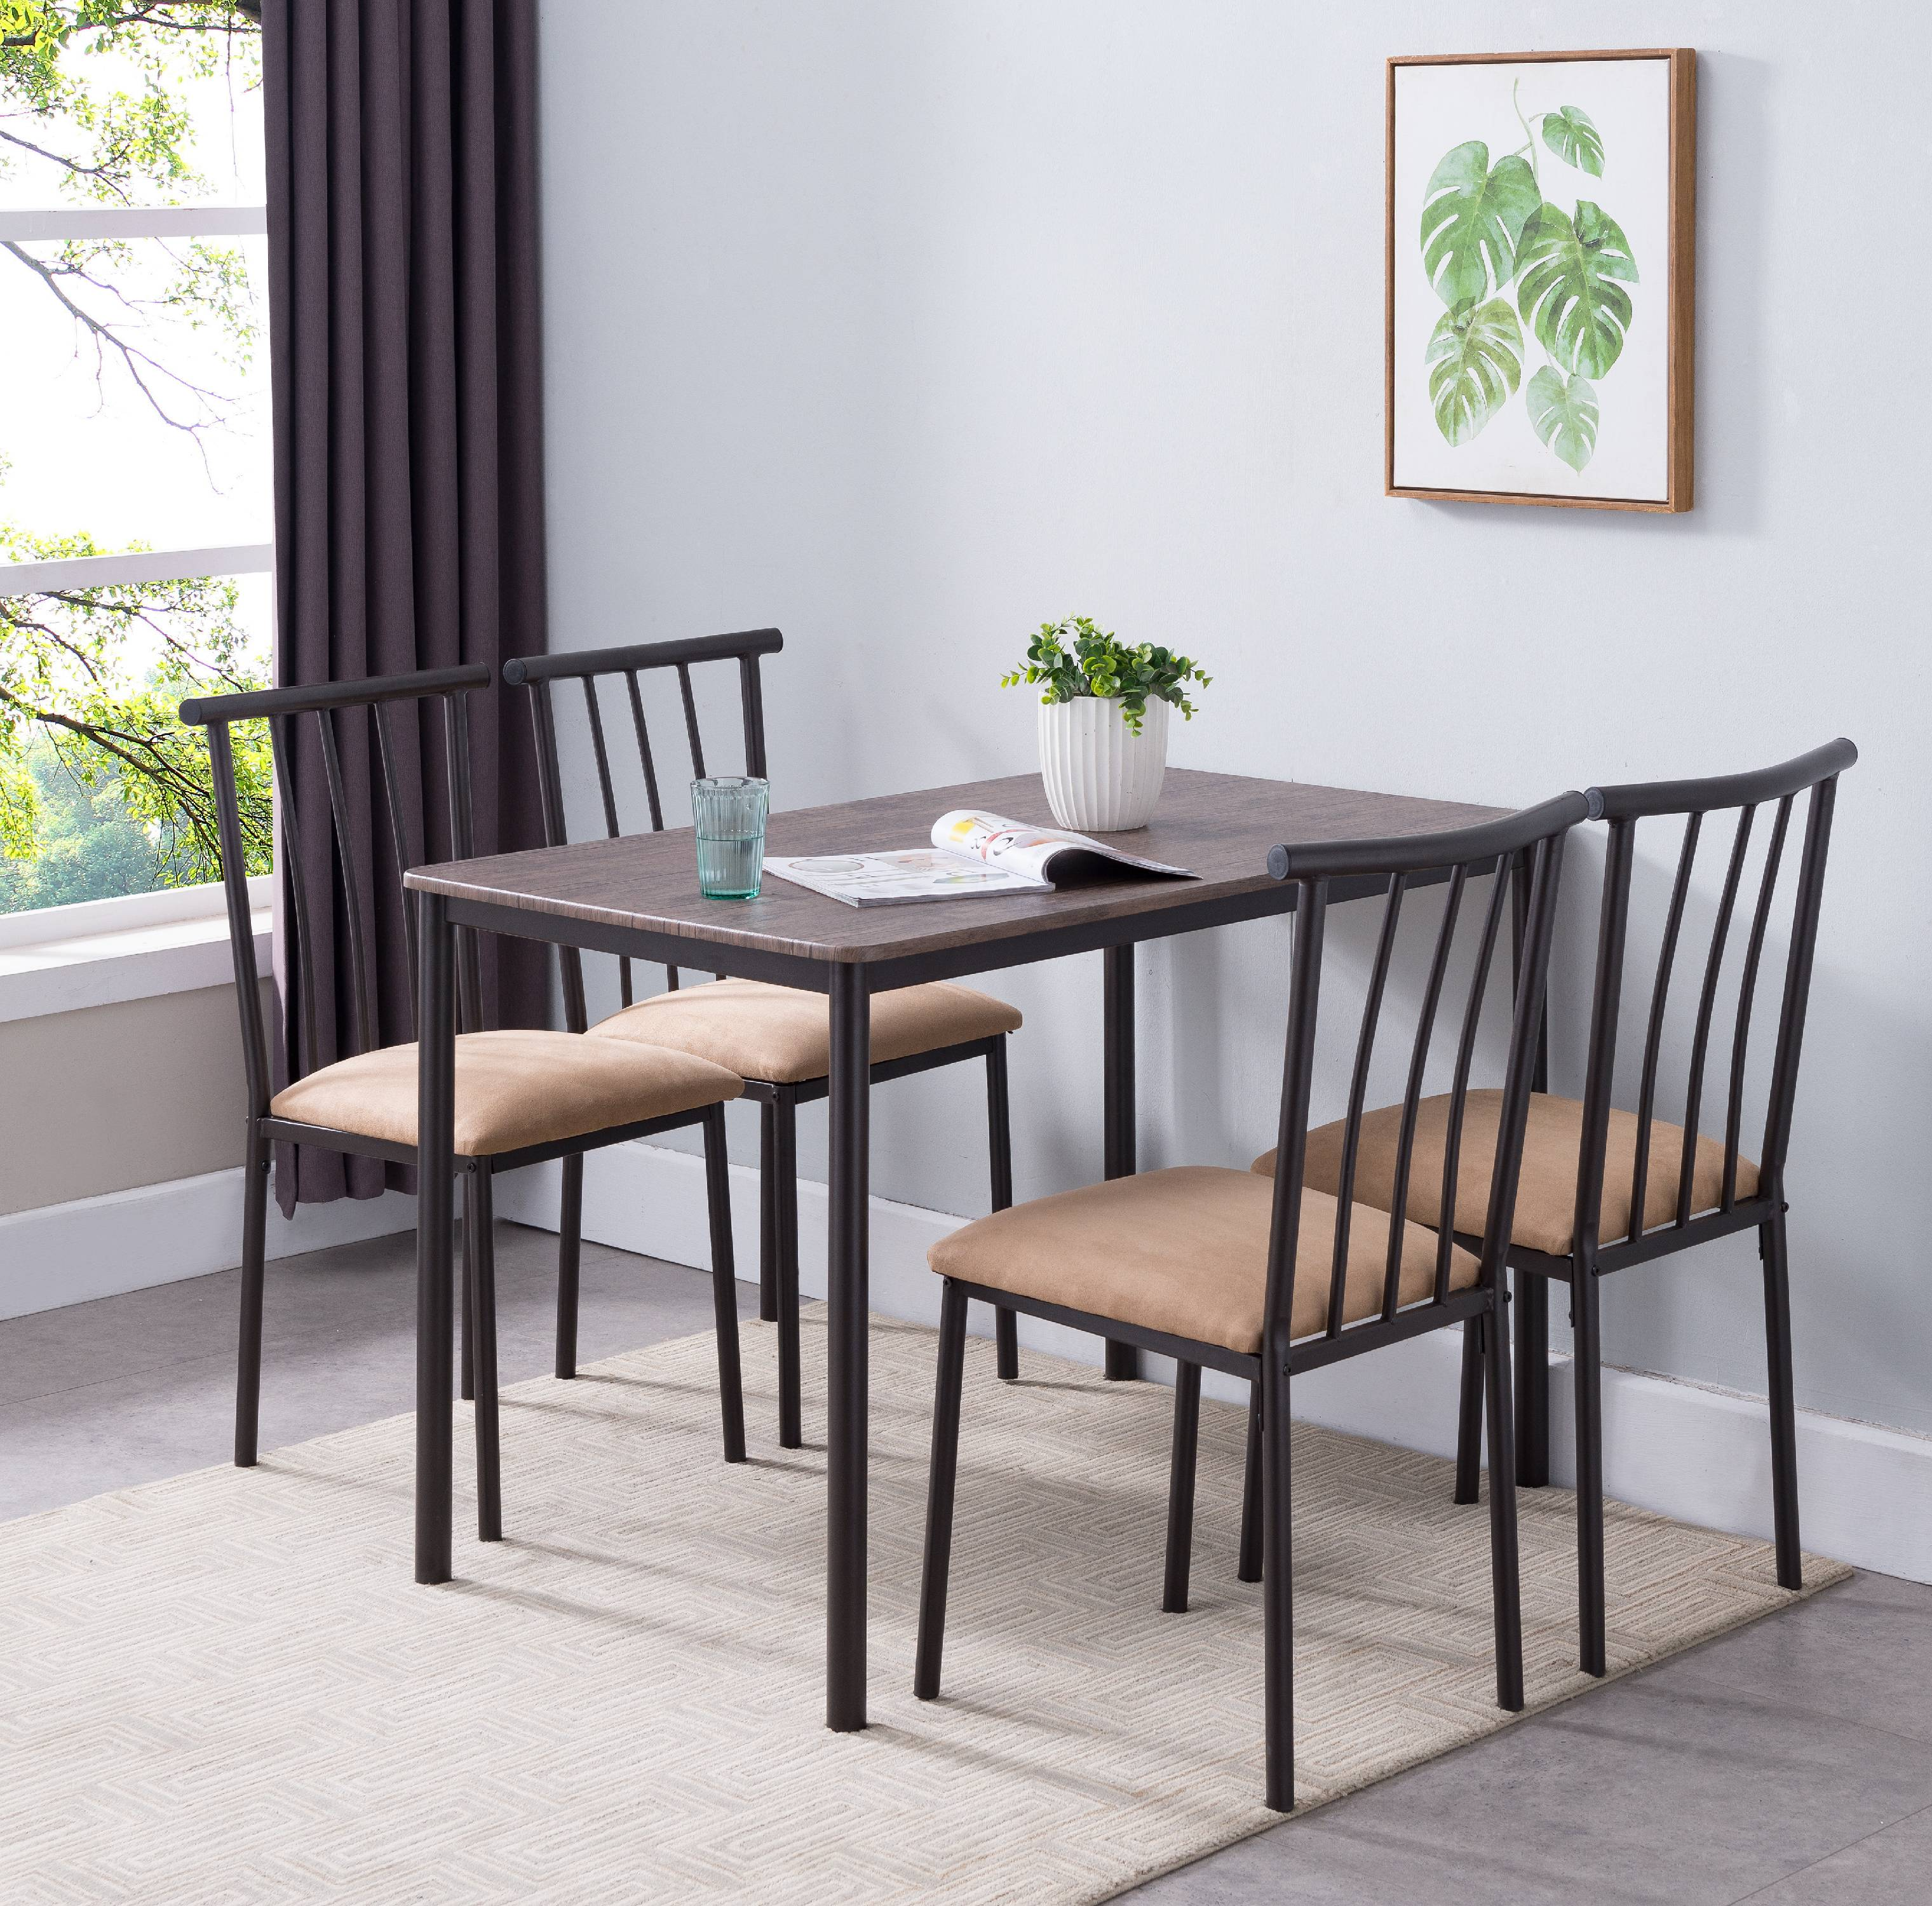 Ira 5 Piece Dining Set, Black Metal Frame, Brown Wood Top, Microfiber Seat, Transitional (Rectangular Table & 4 Chairs)